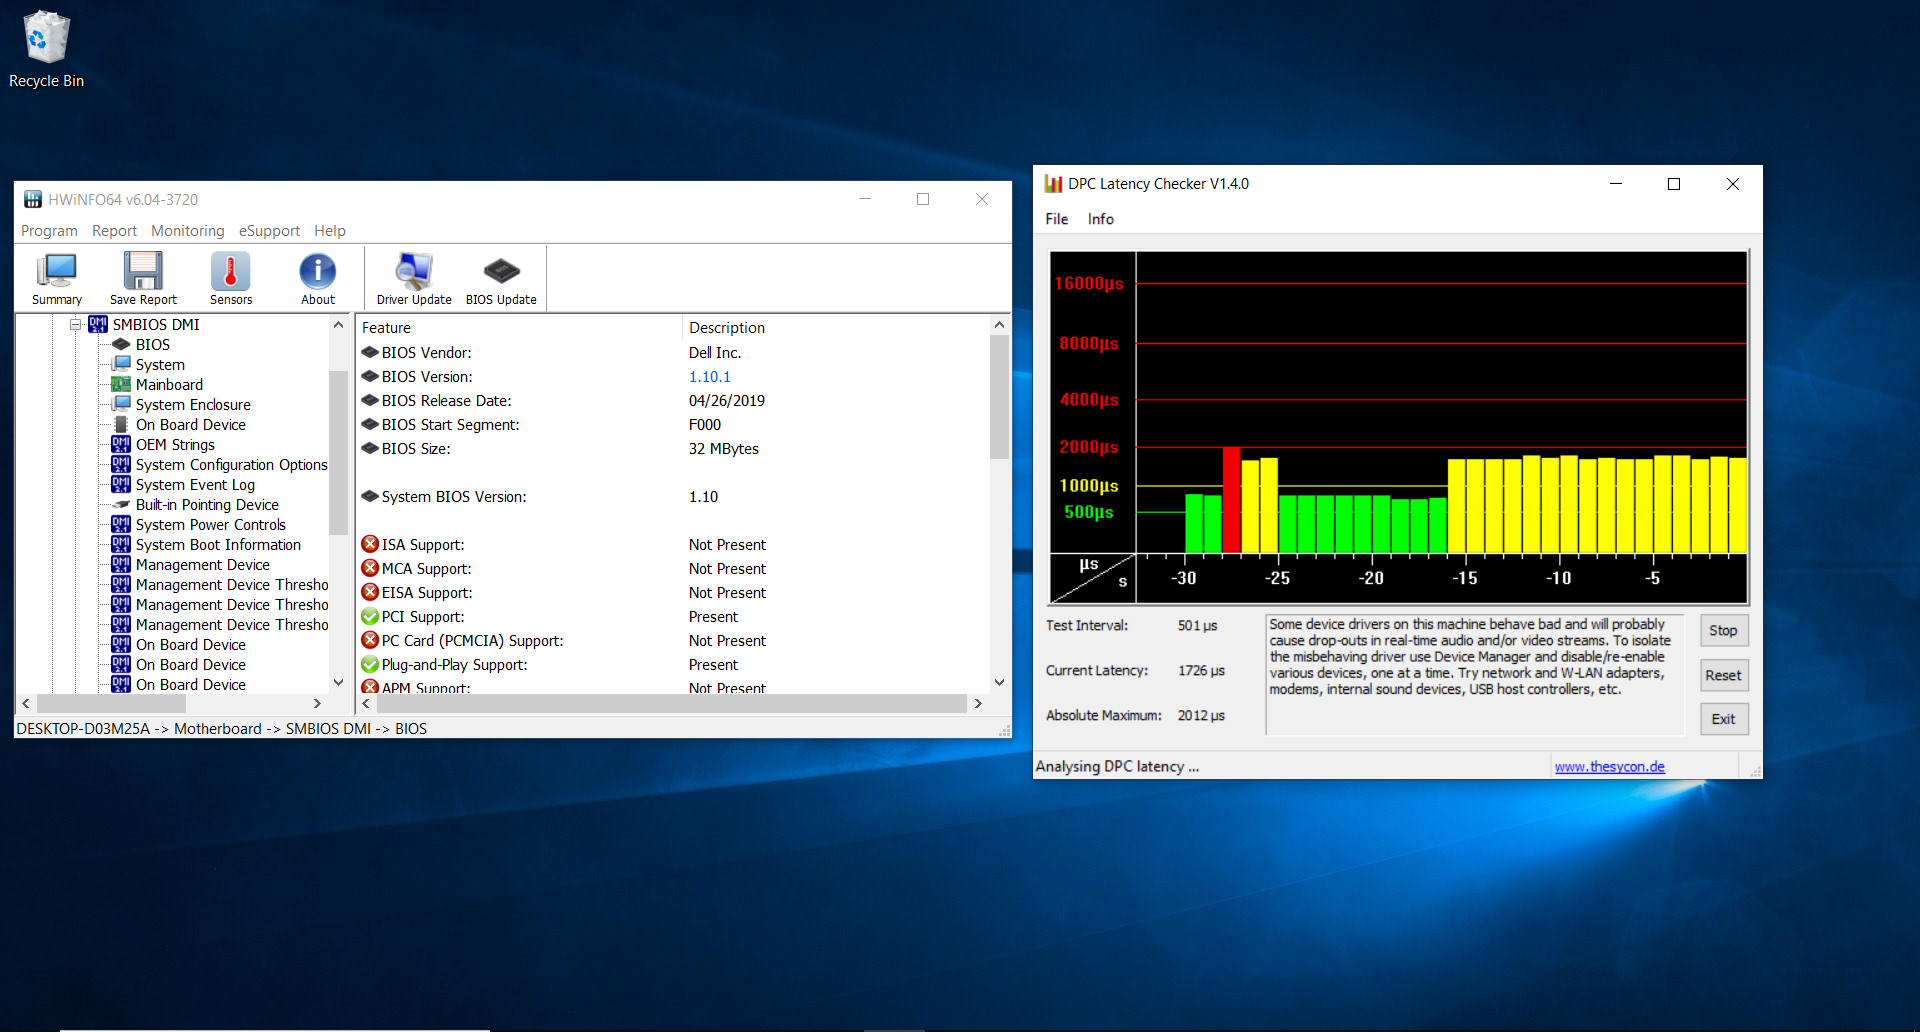 Dell has not eliminated the DPC latency issues that have